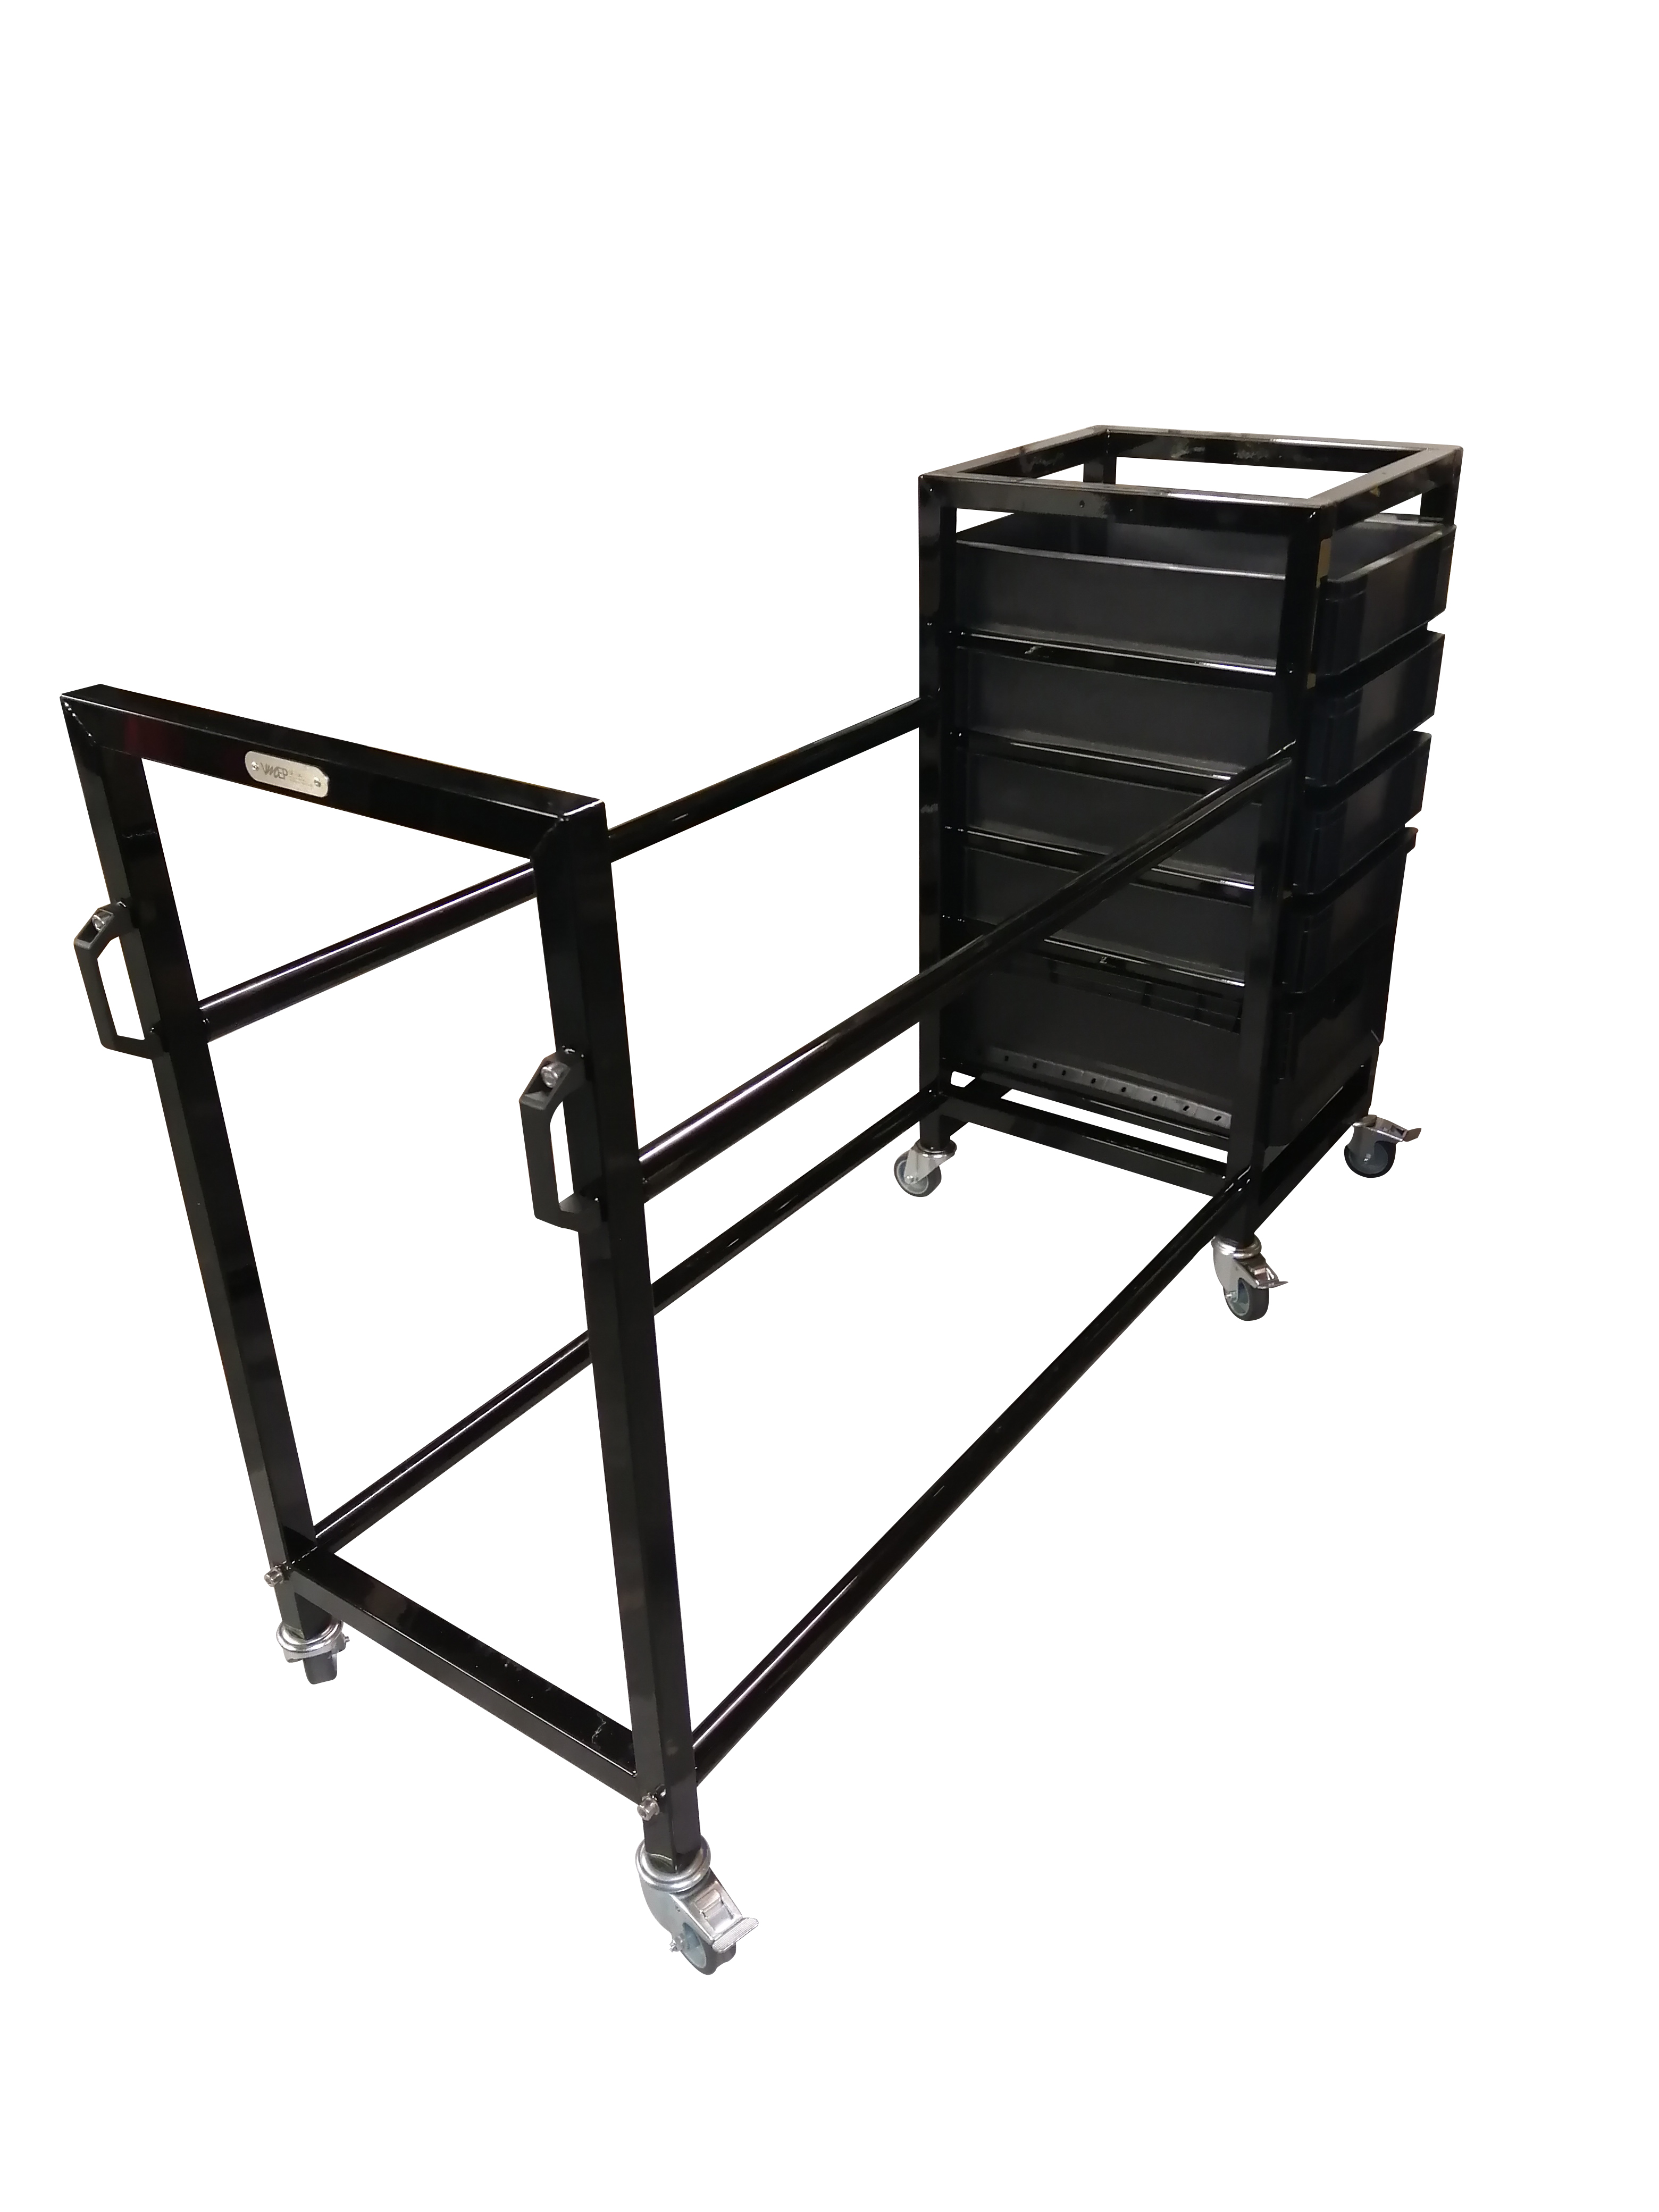 Tyre rack with removable euro boxes